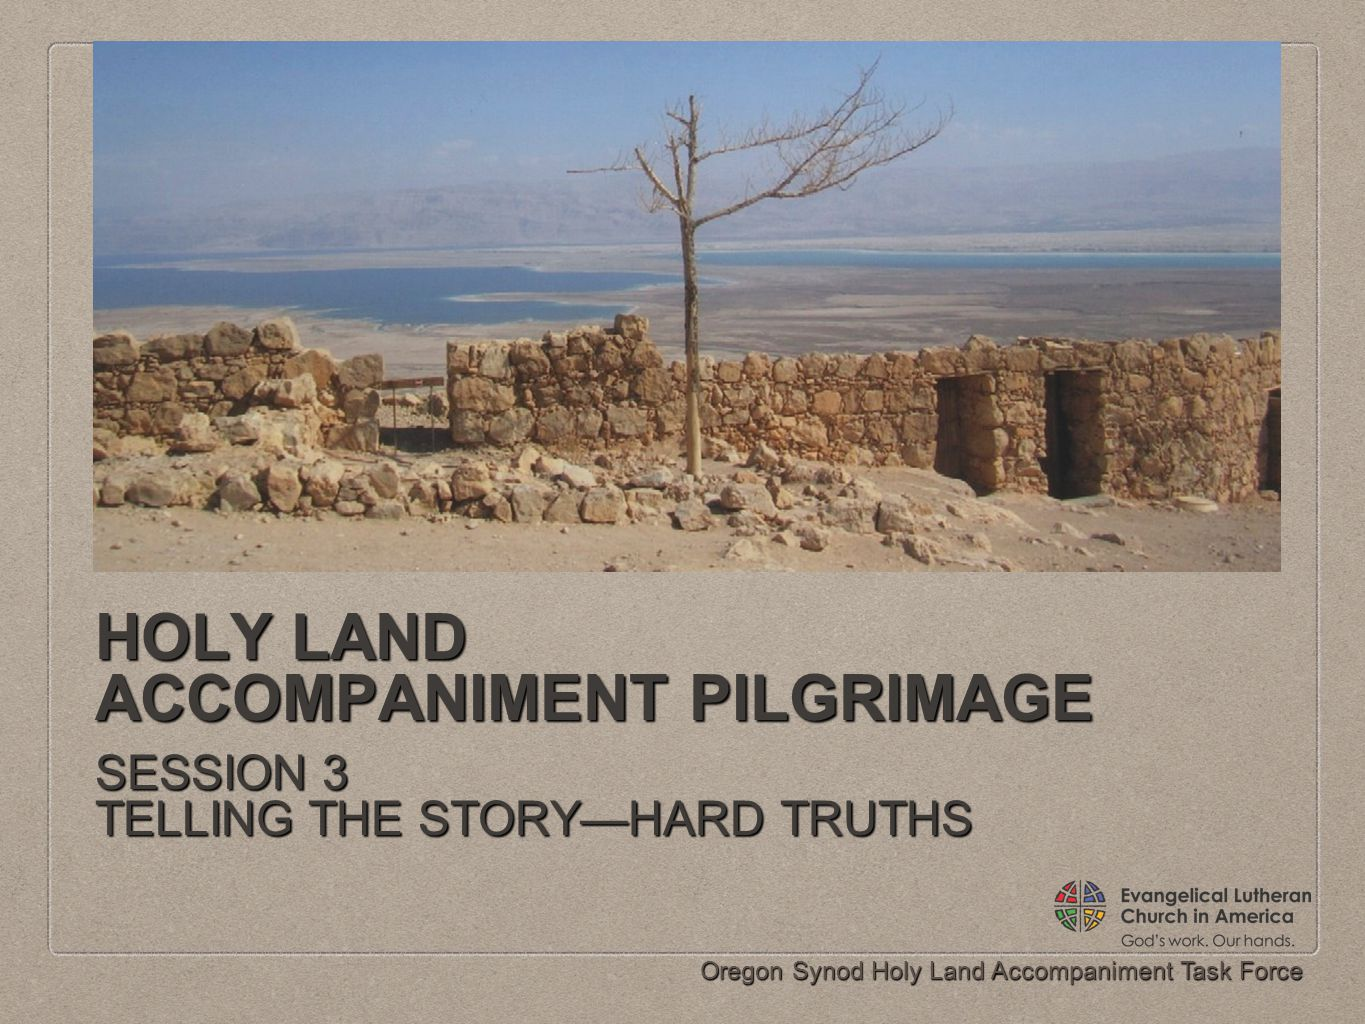 Oregon Synod Holy Land Accompaniment Task Force HOLY LAND ACCOMPANIMENT PILGRIMAGE SESSION 3 TELLING THE STORY—HARD TRUTHS